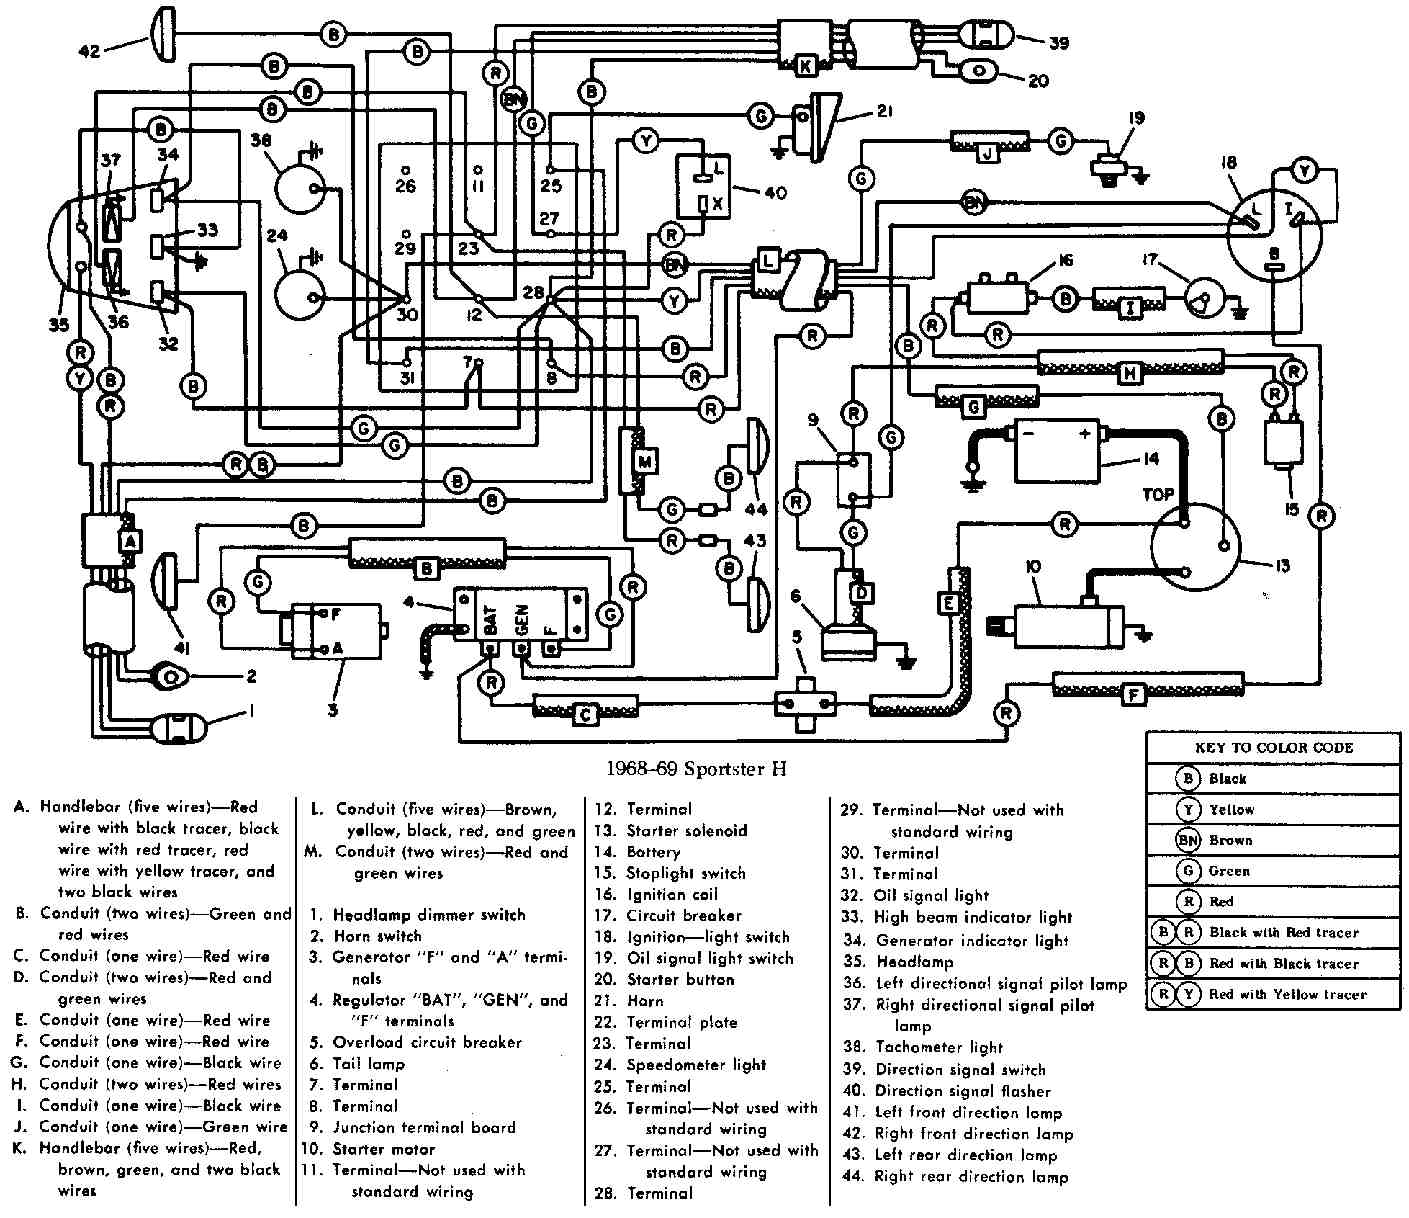 harley davidson motorcycle manuals pdf wiring diagrams fault codes rh motorcycle manual com harley davidson radio wiring diagram 1959 harley davidson wiring diagram